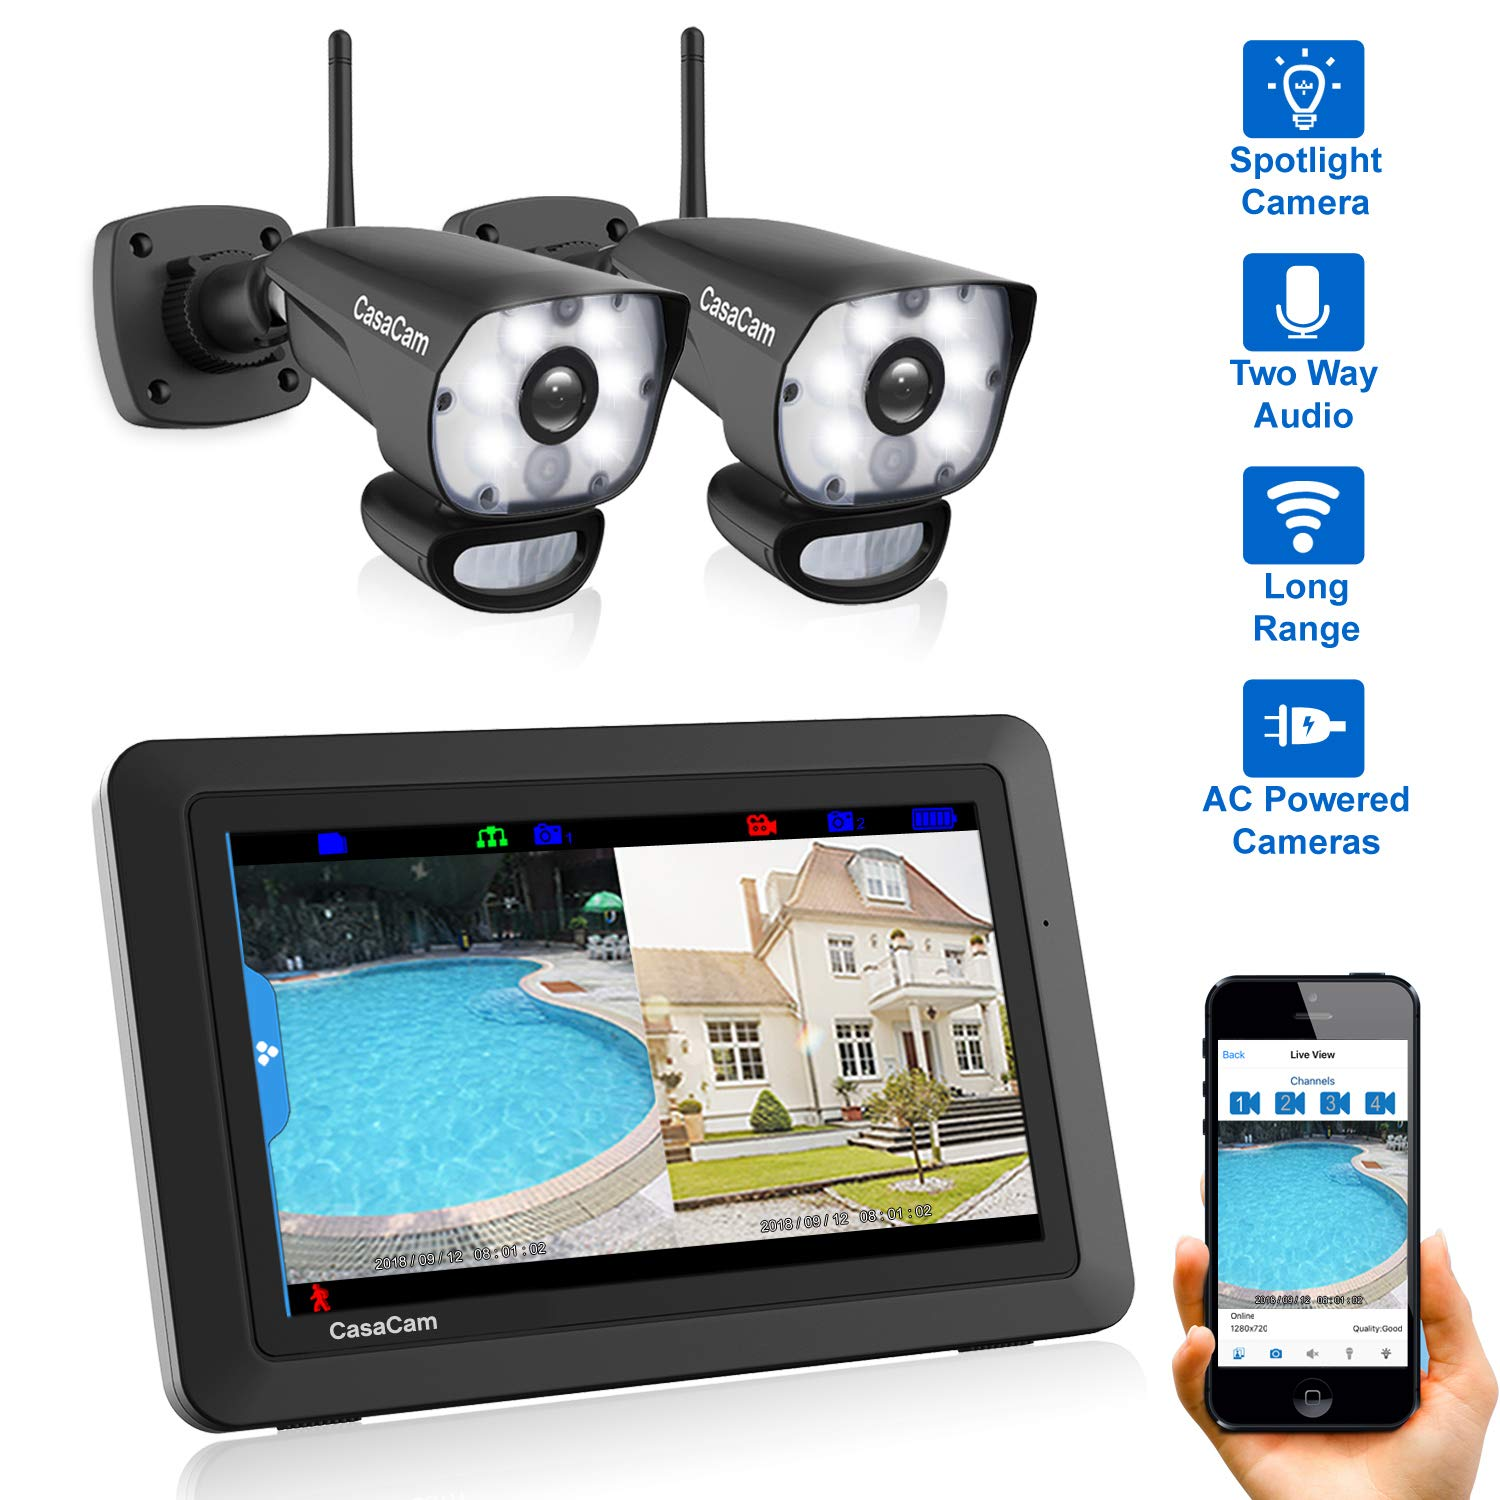 Best Home Surveillance Systems 2020 Best Rated in Complete Surveillance Systems & Helpful Customer